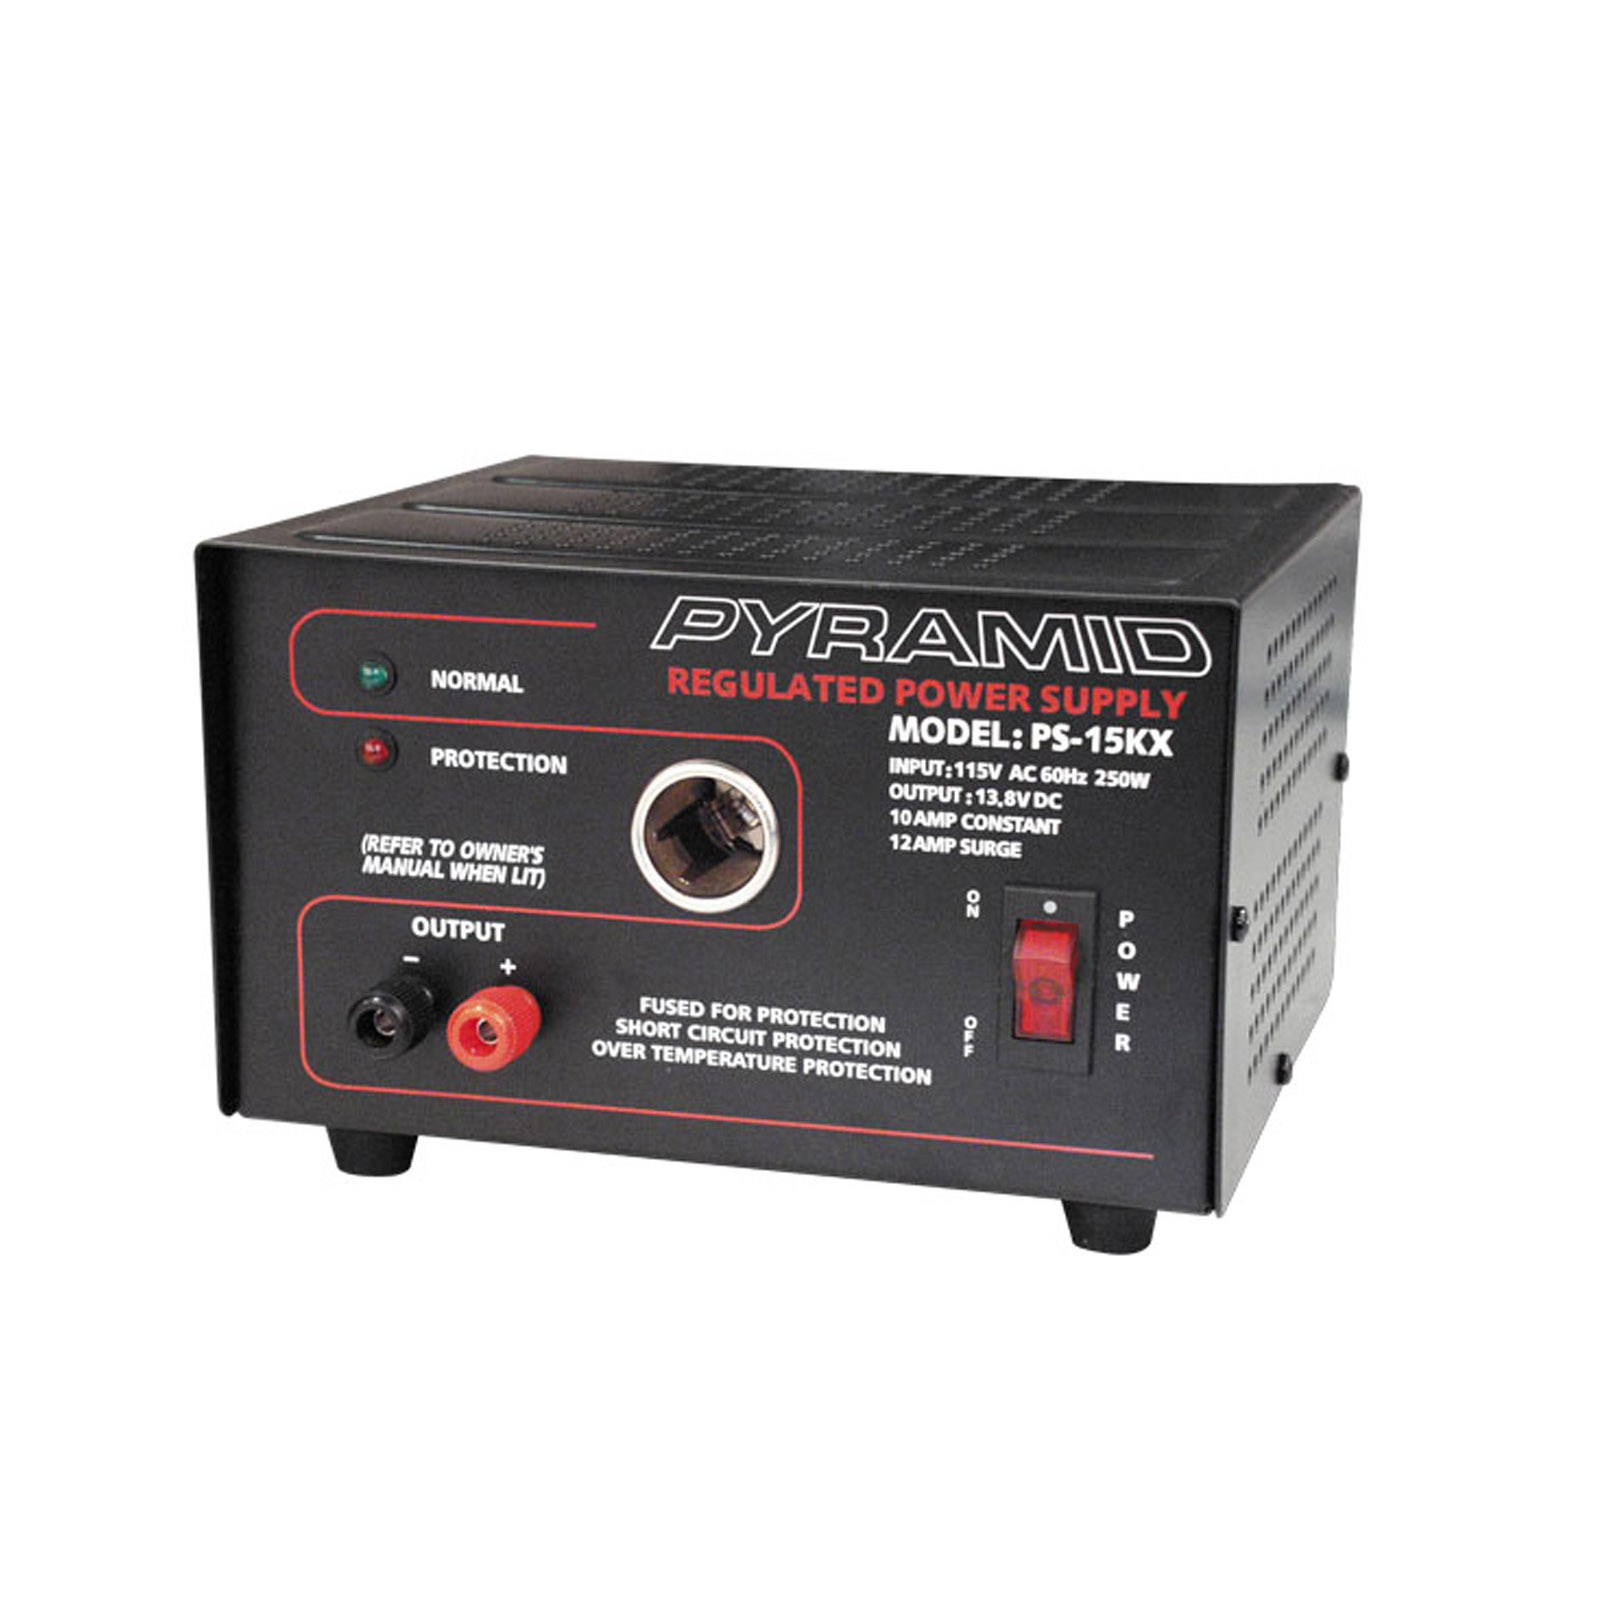 Pyramid 10a 138 Volt Power Supply With Cigarette Lighter Adapter This Is A Regulated Dc Short Circuit Protection And